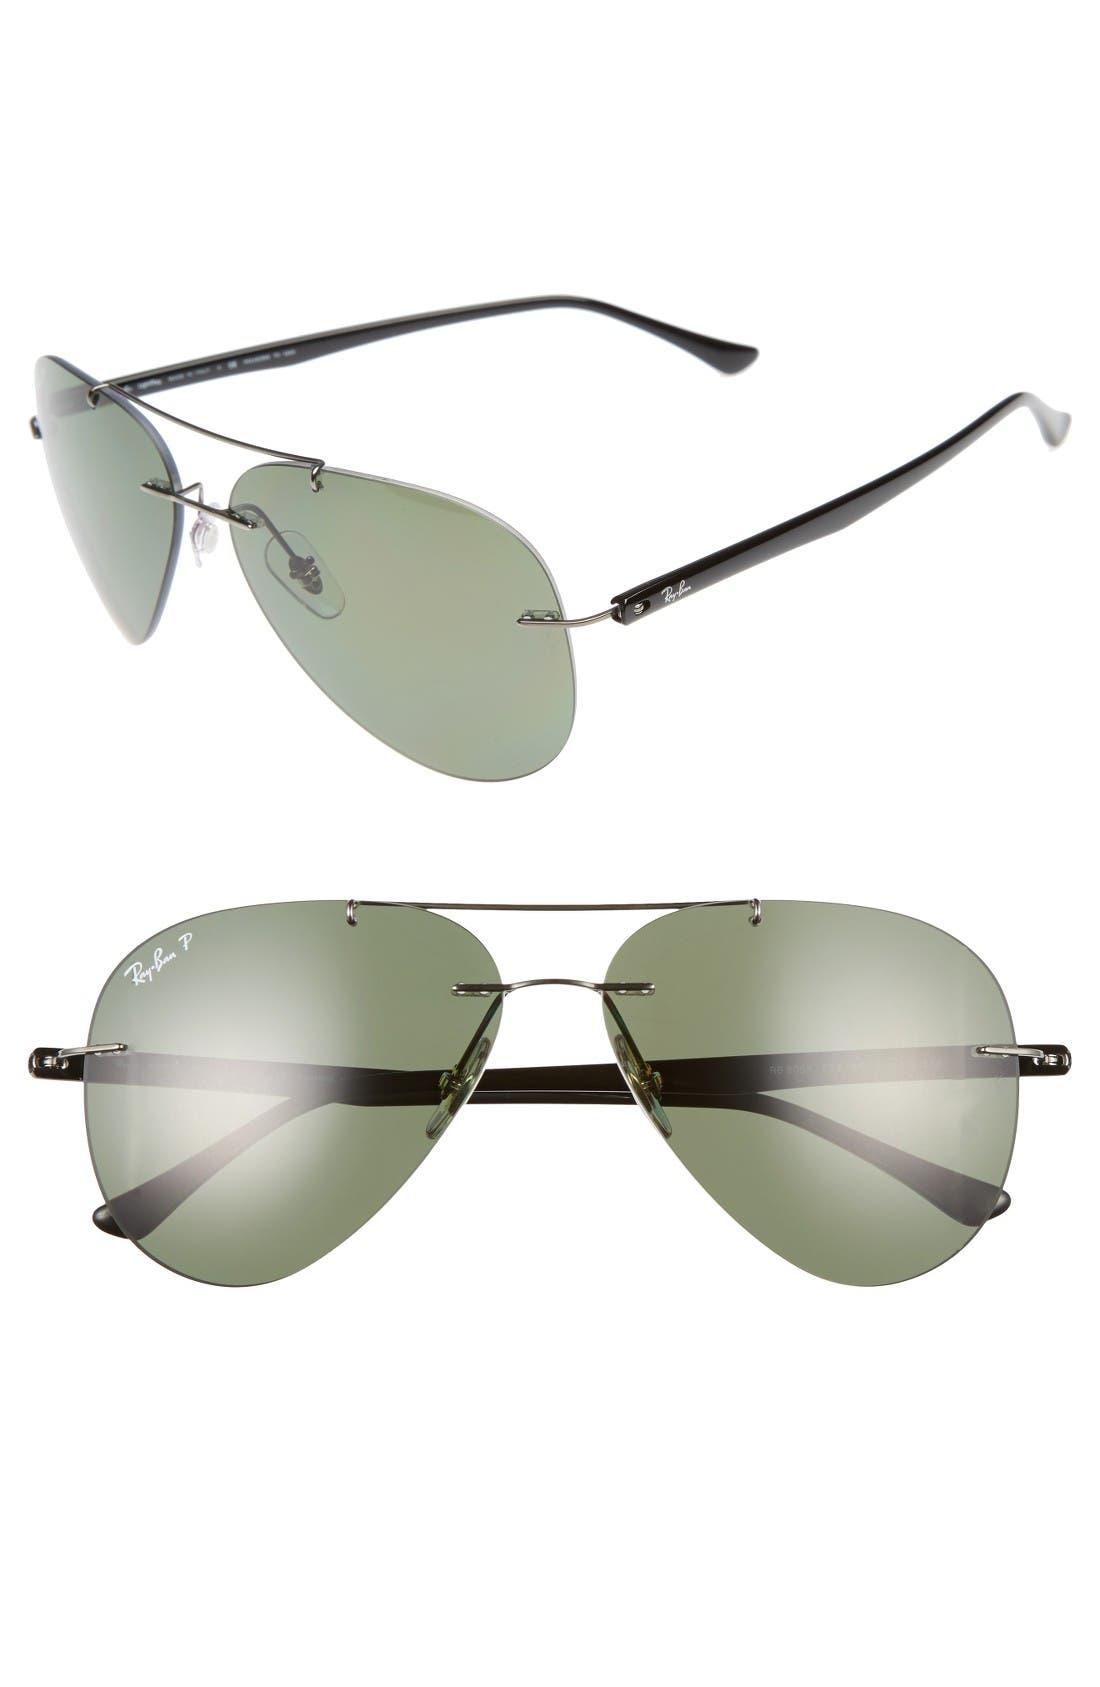 59mm Polarized Aviator Sunglasses,                         Main,                         color, Gunmetal/ Green